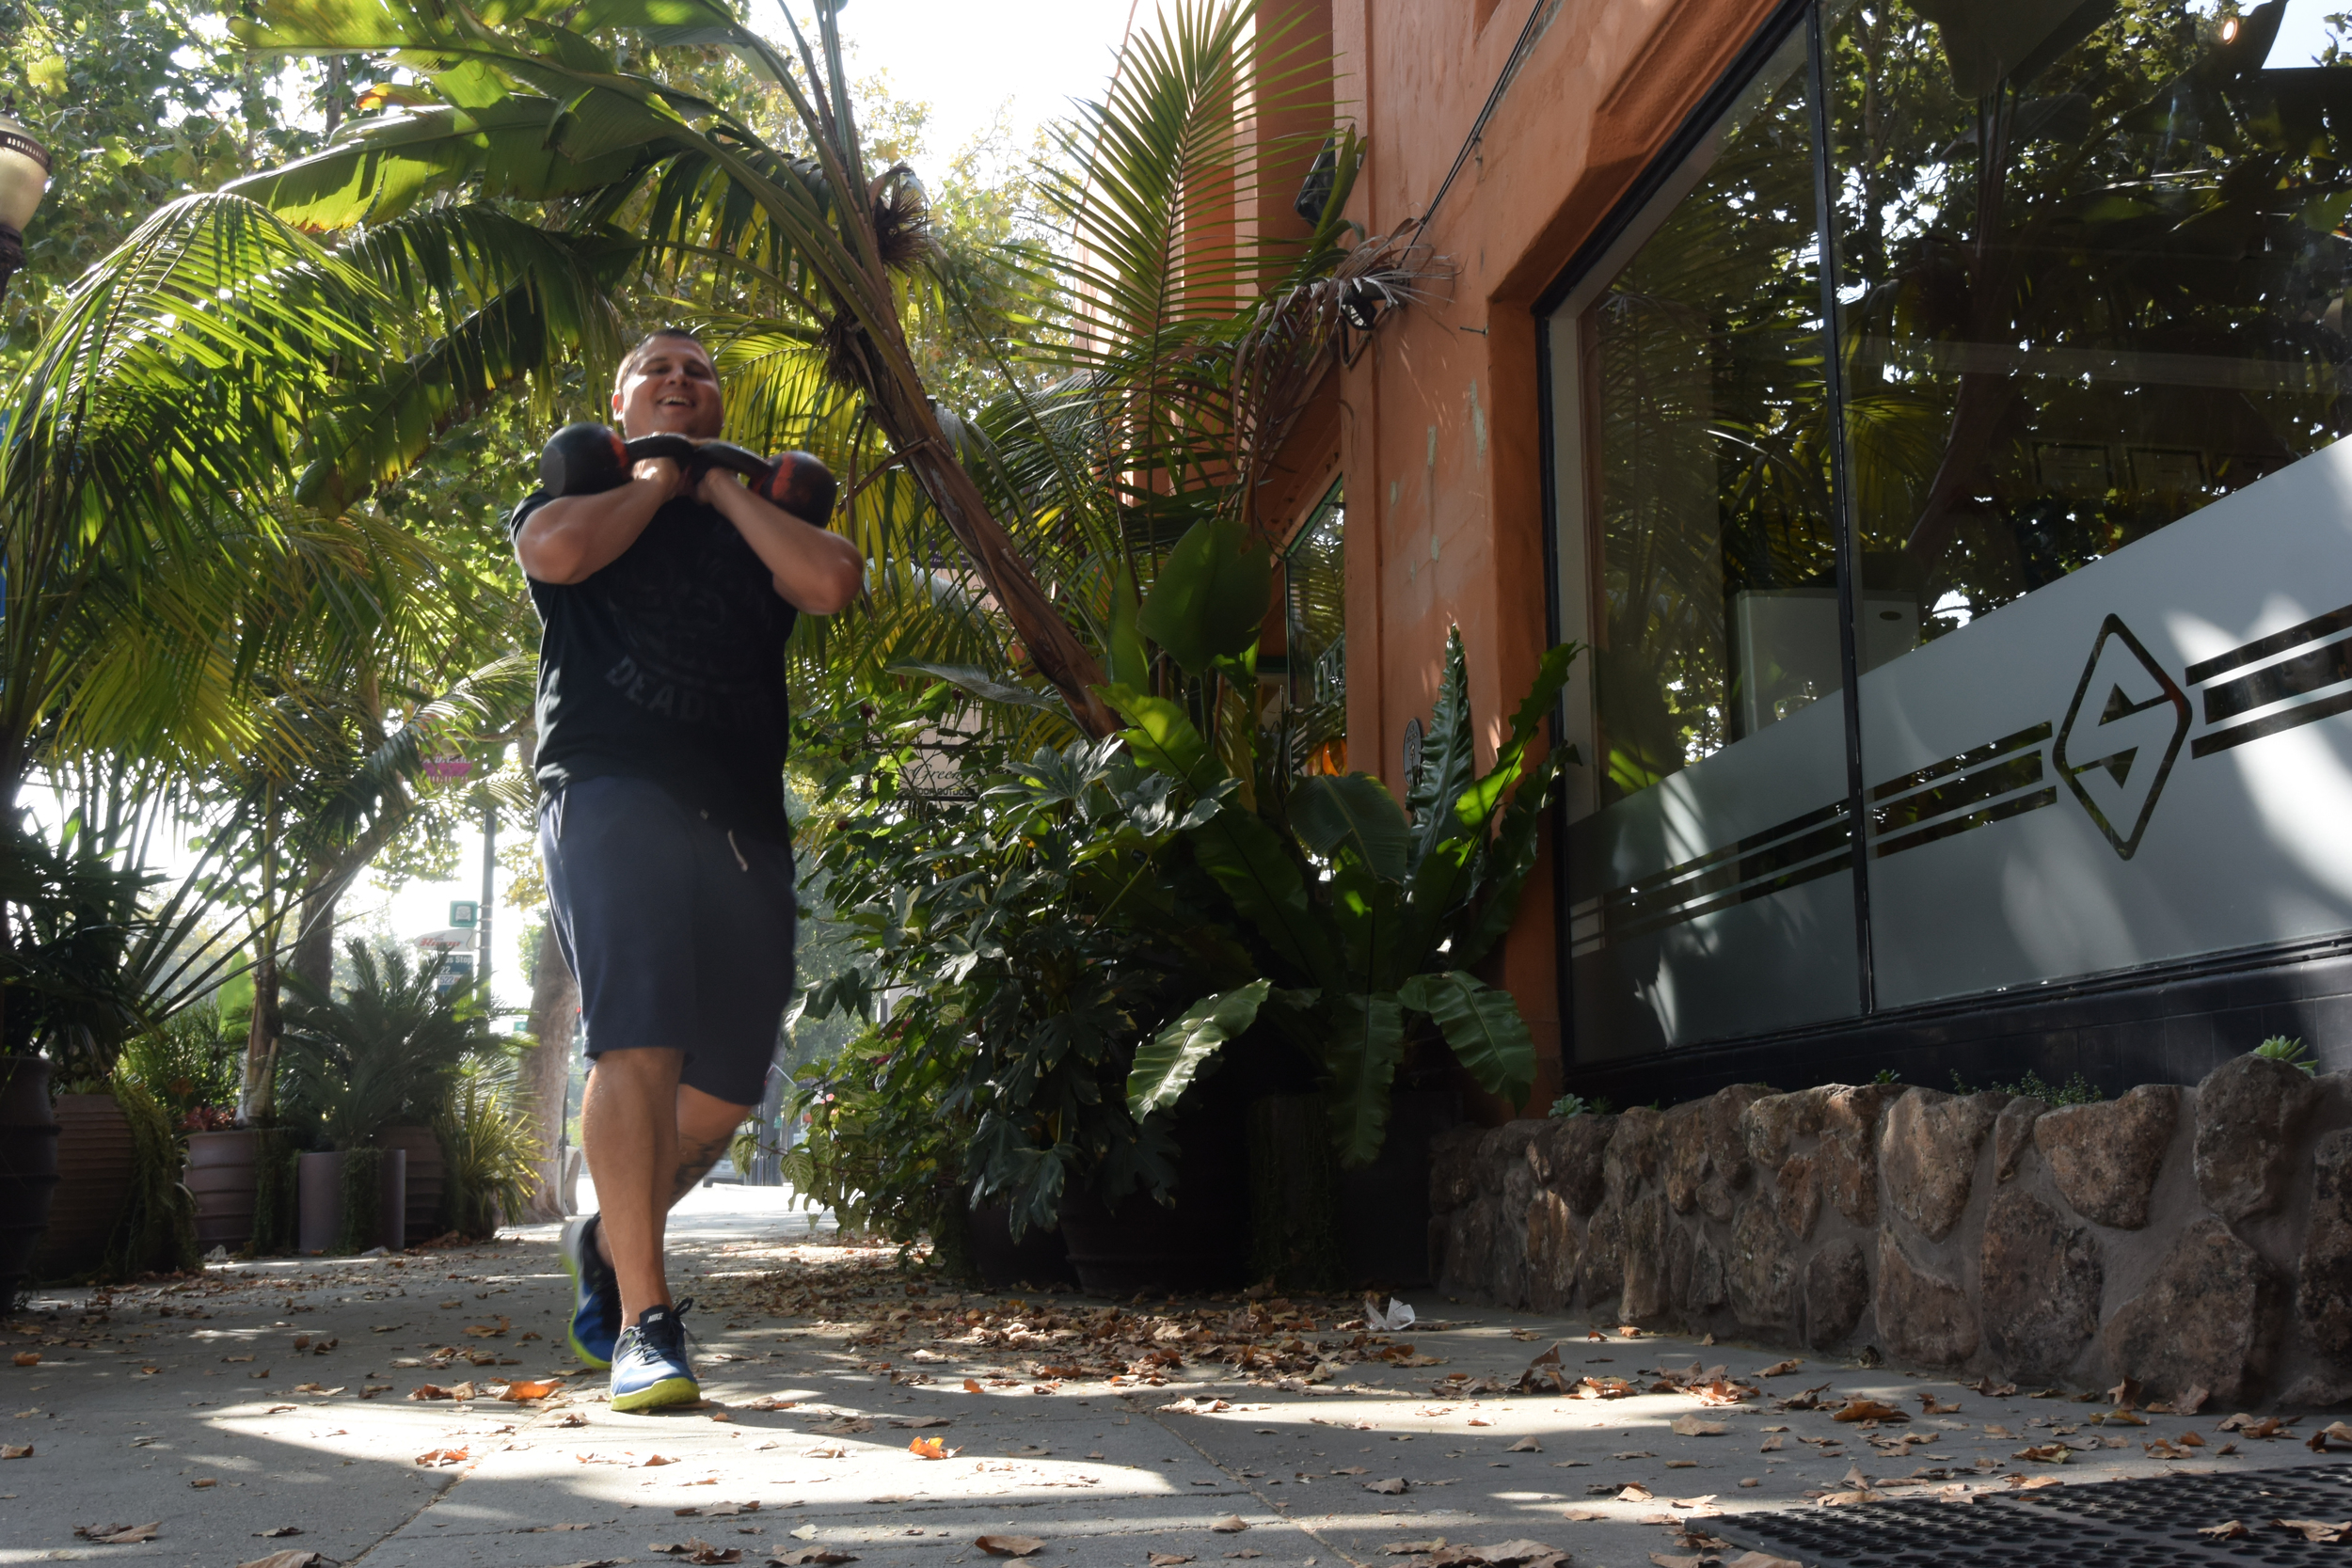 Shane likes long walks in the park- with kettlebells in the rack position.